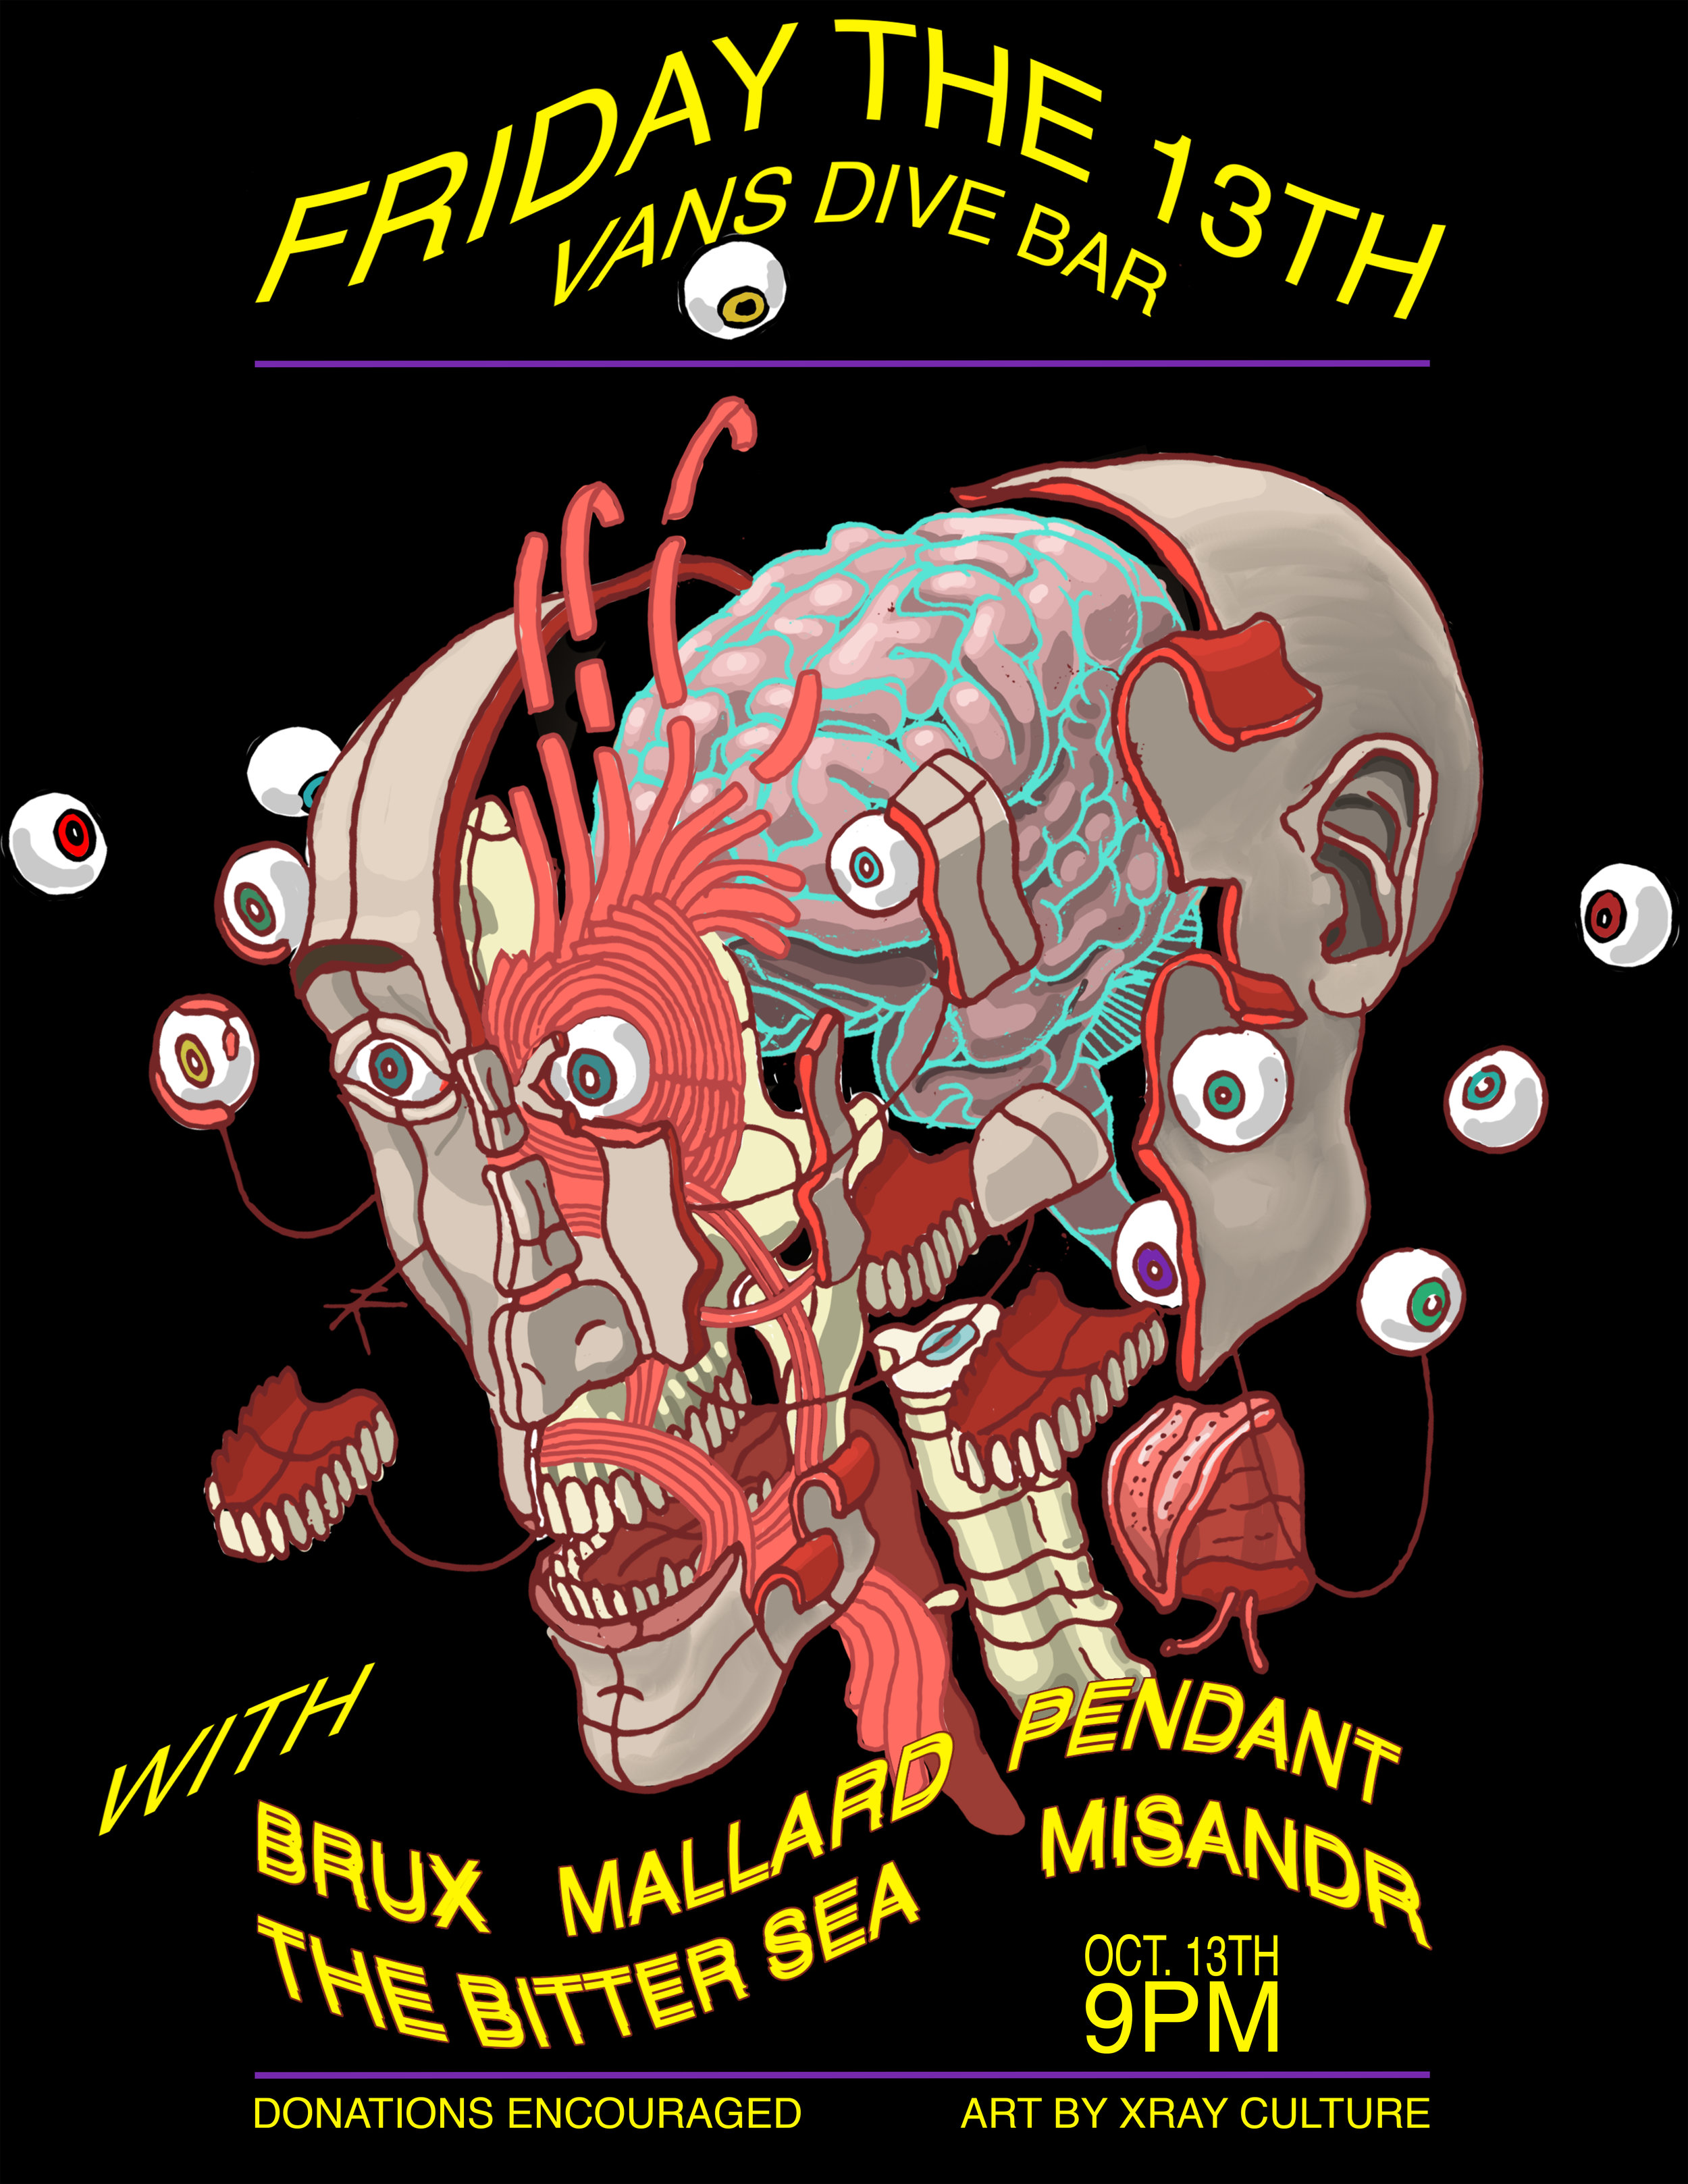 016_Friday the 13th show flyer_LeviWerner_2017_extracurricular.jpg